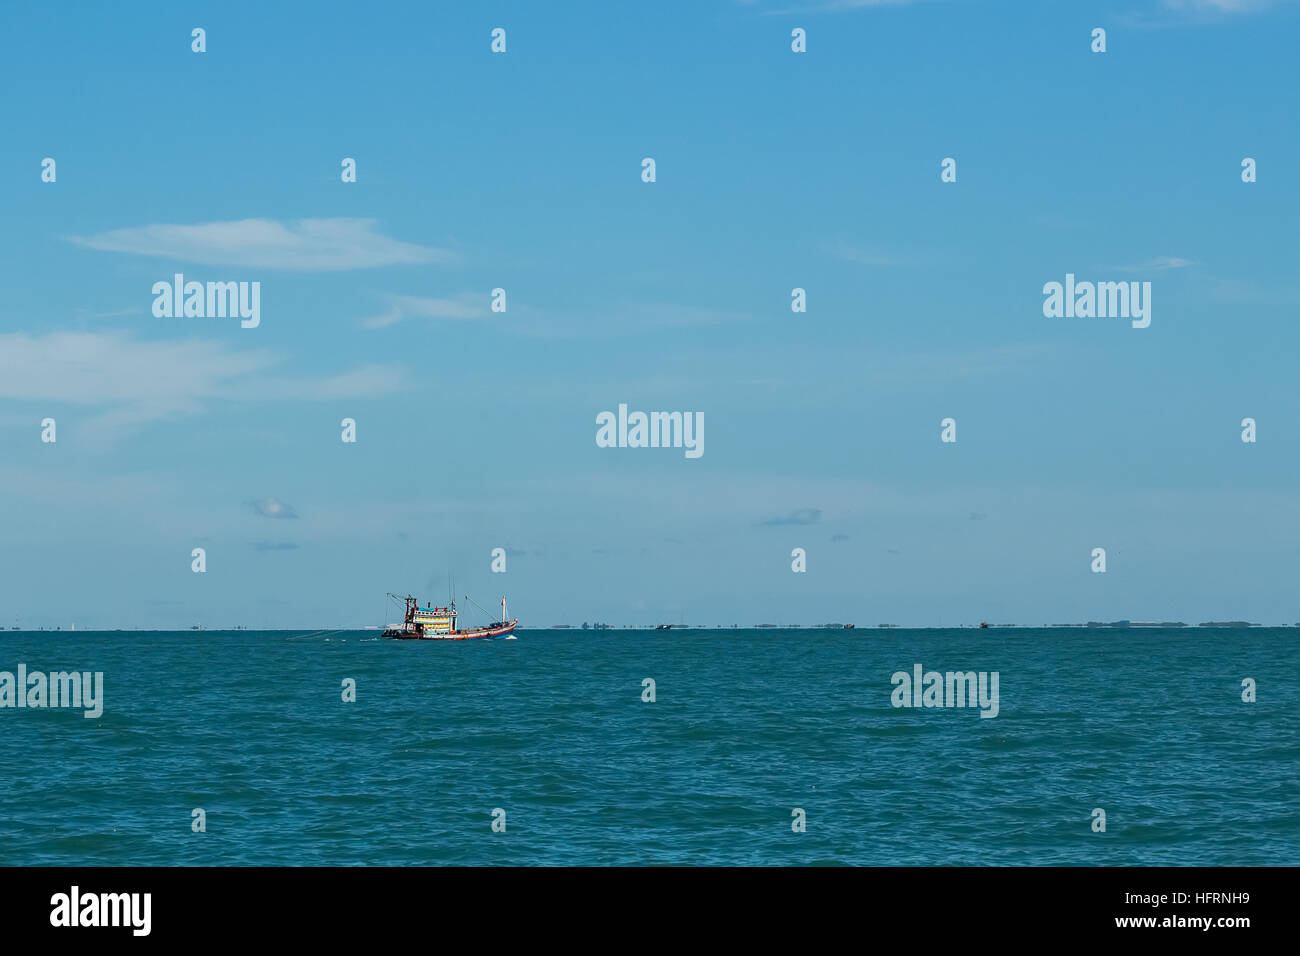 Fishing Boat on the sea at Gulf of Thailand - Stock Image